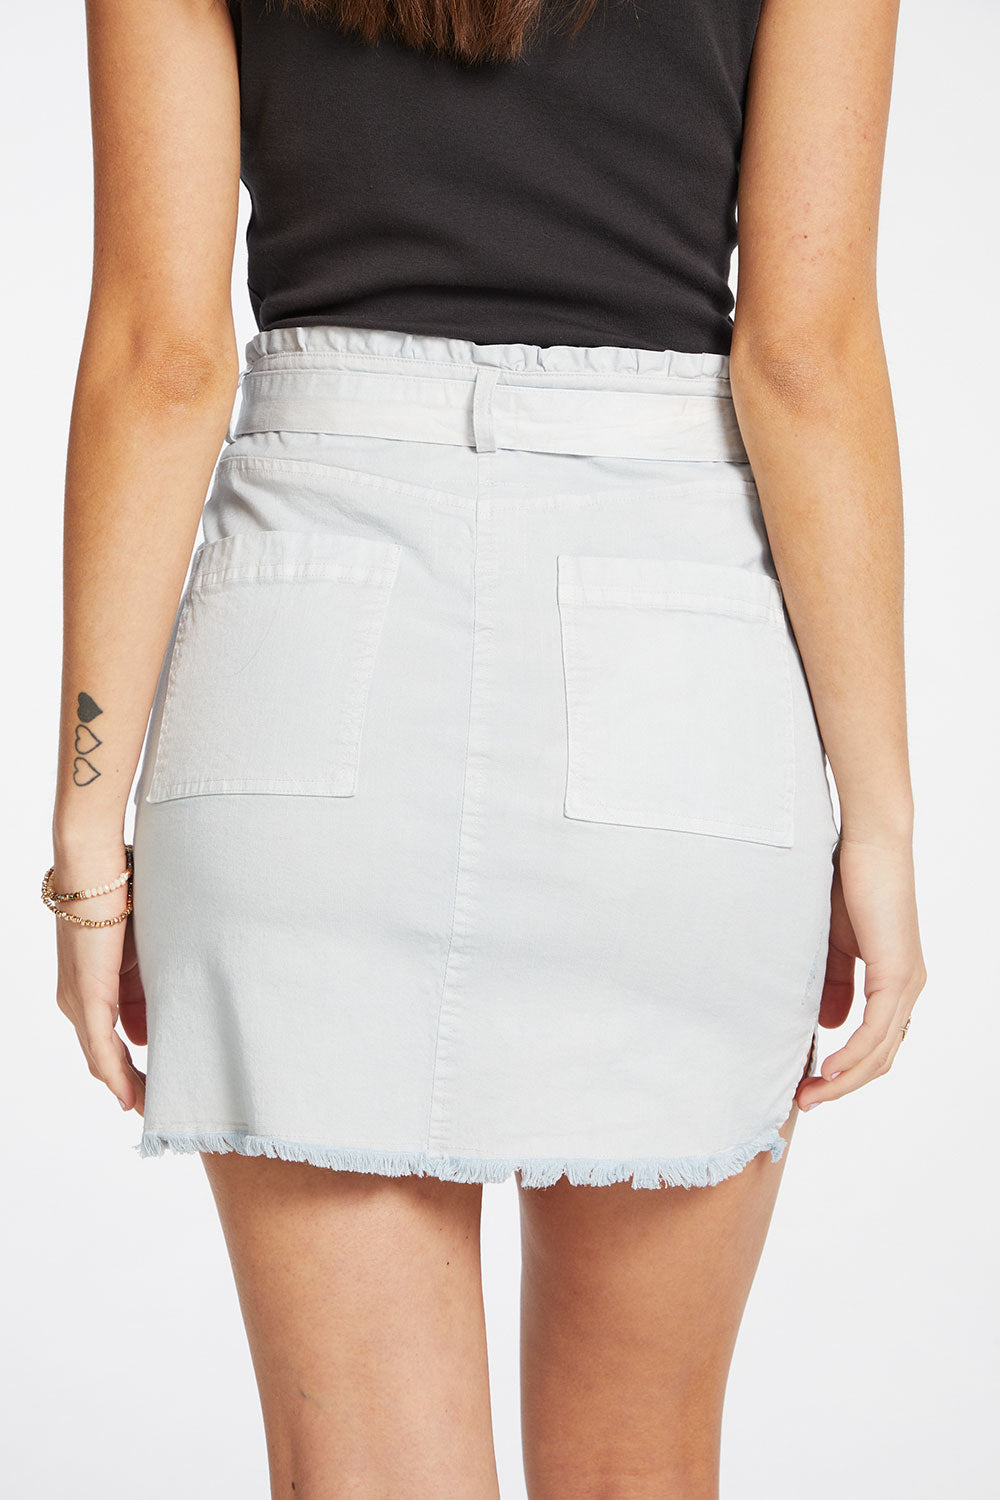 Stretch Twill Distressed Paperbag Waist Hi Lo Mini Skirt with Belt